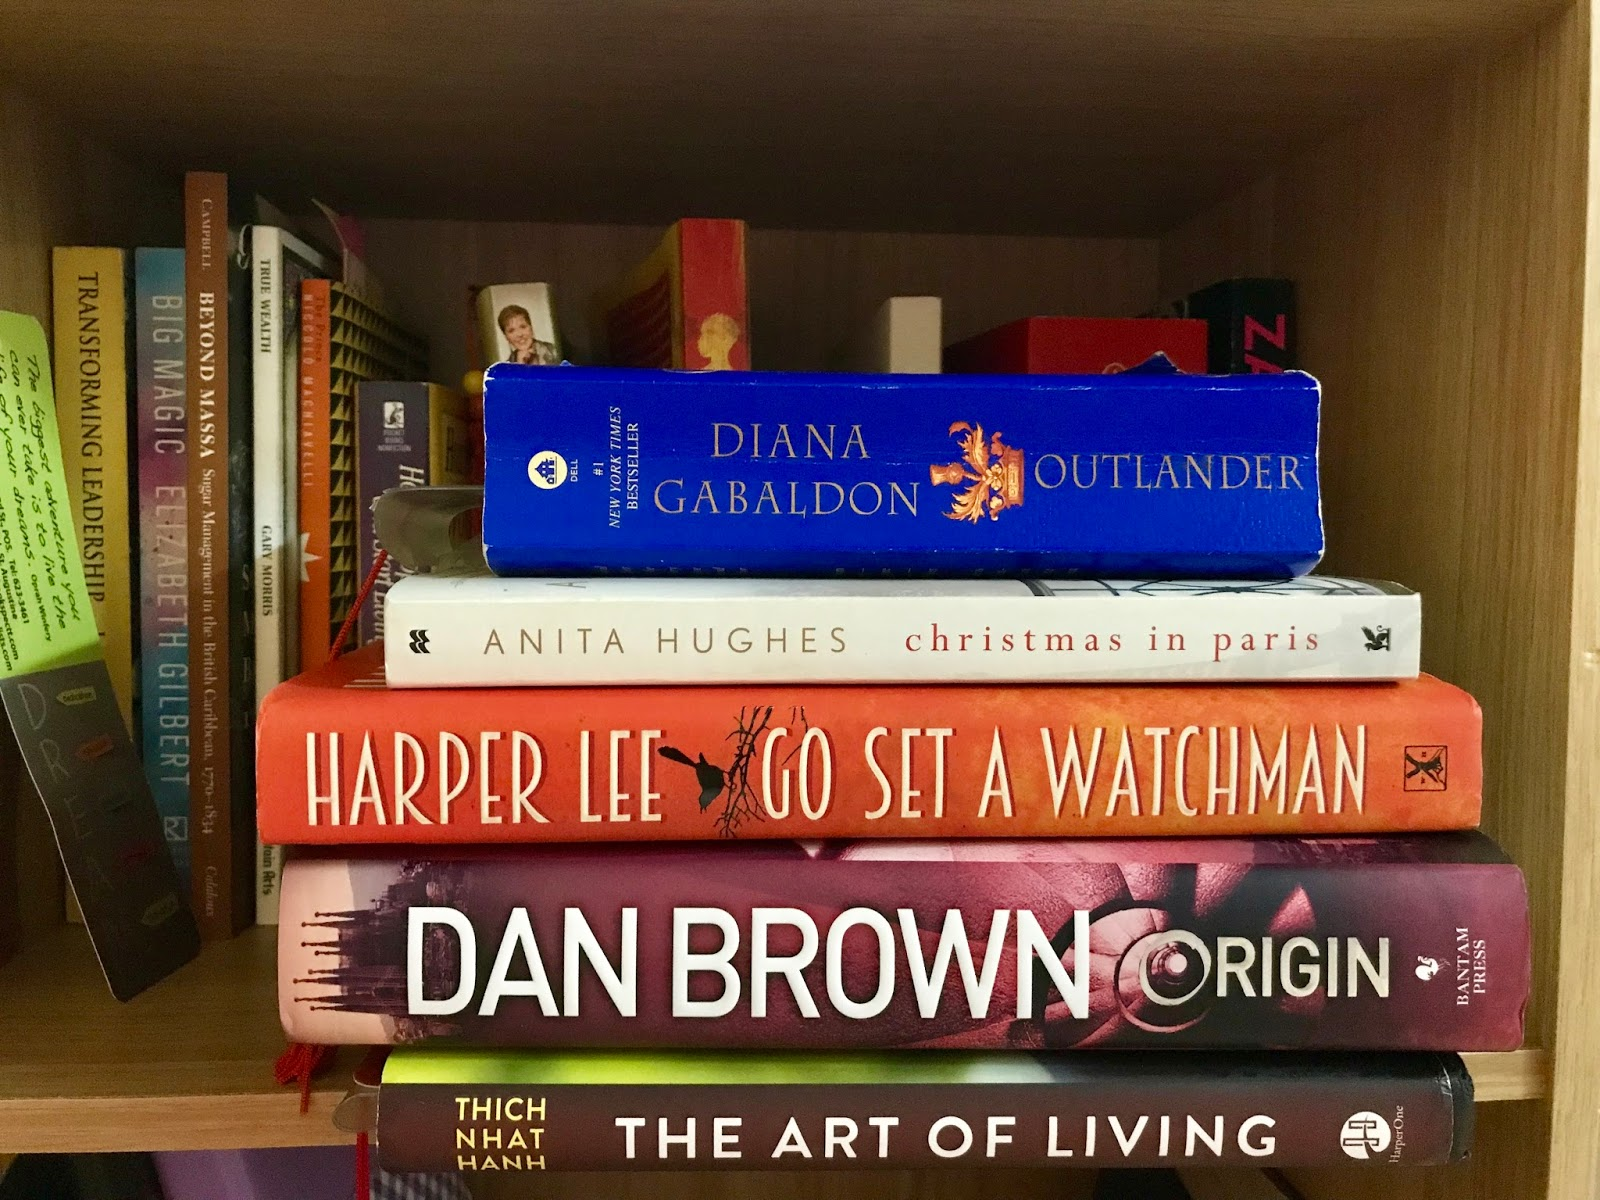 December reading list, books to read, inspiration, motivation, literature